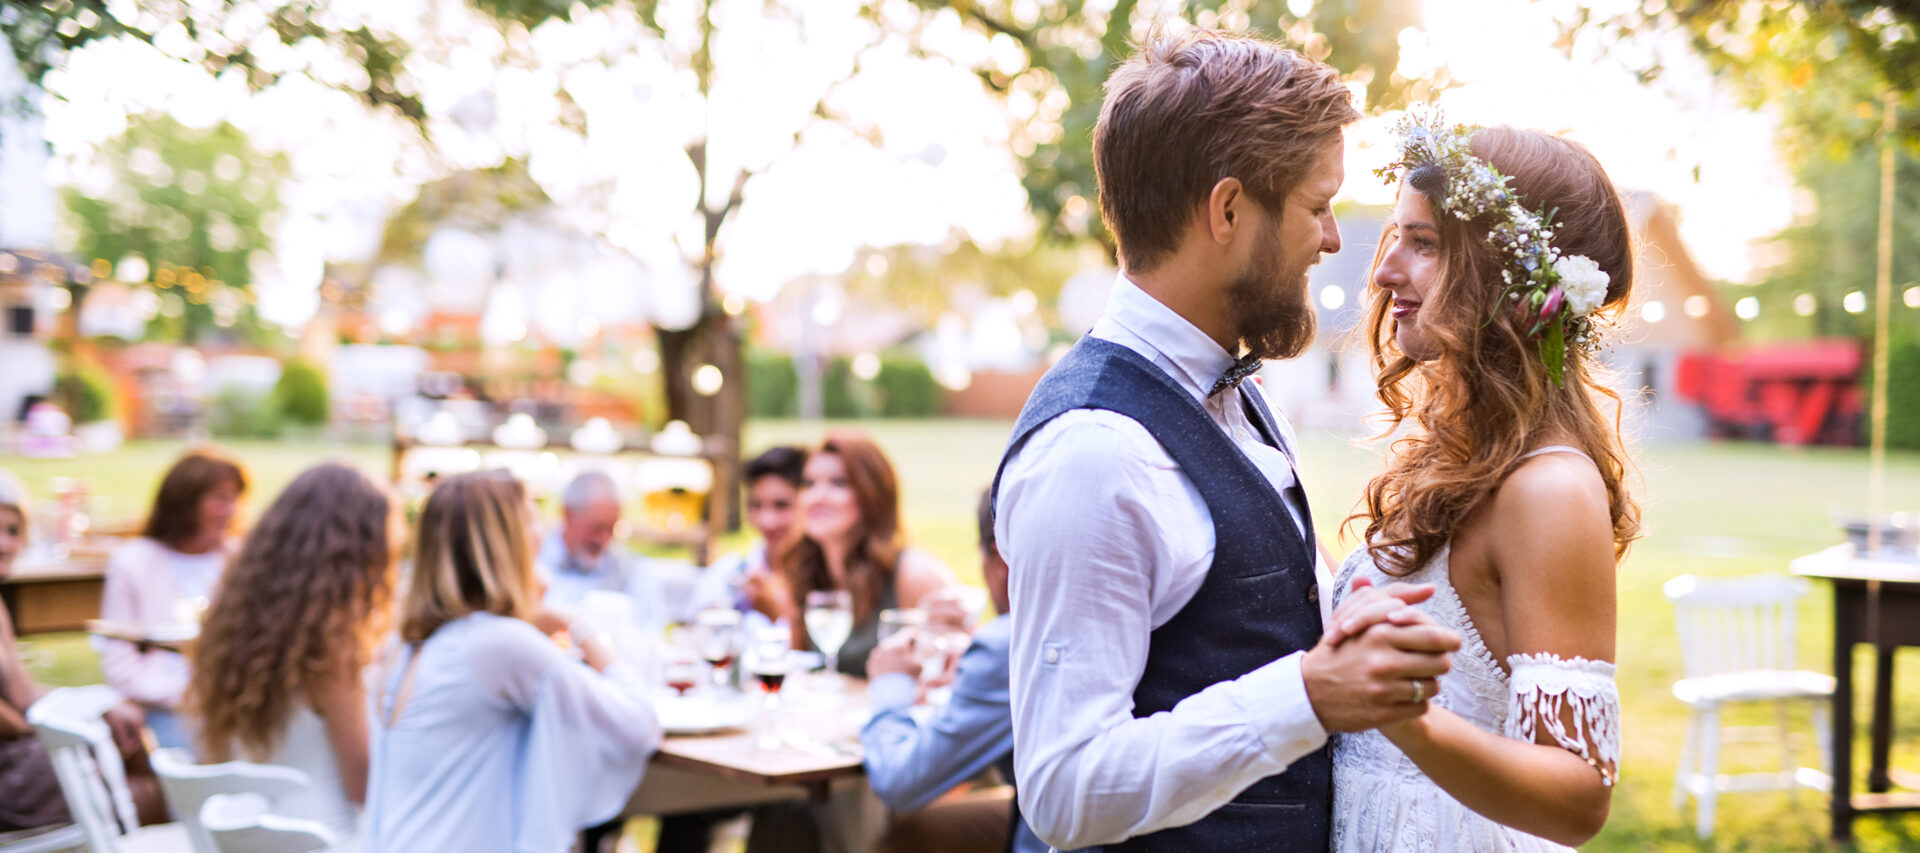 bride-and-groom-dancing-at-wedding-reception-outside-in-the-backyard